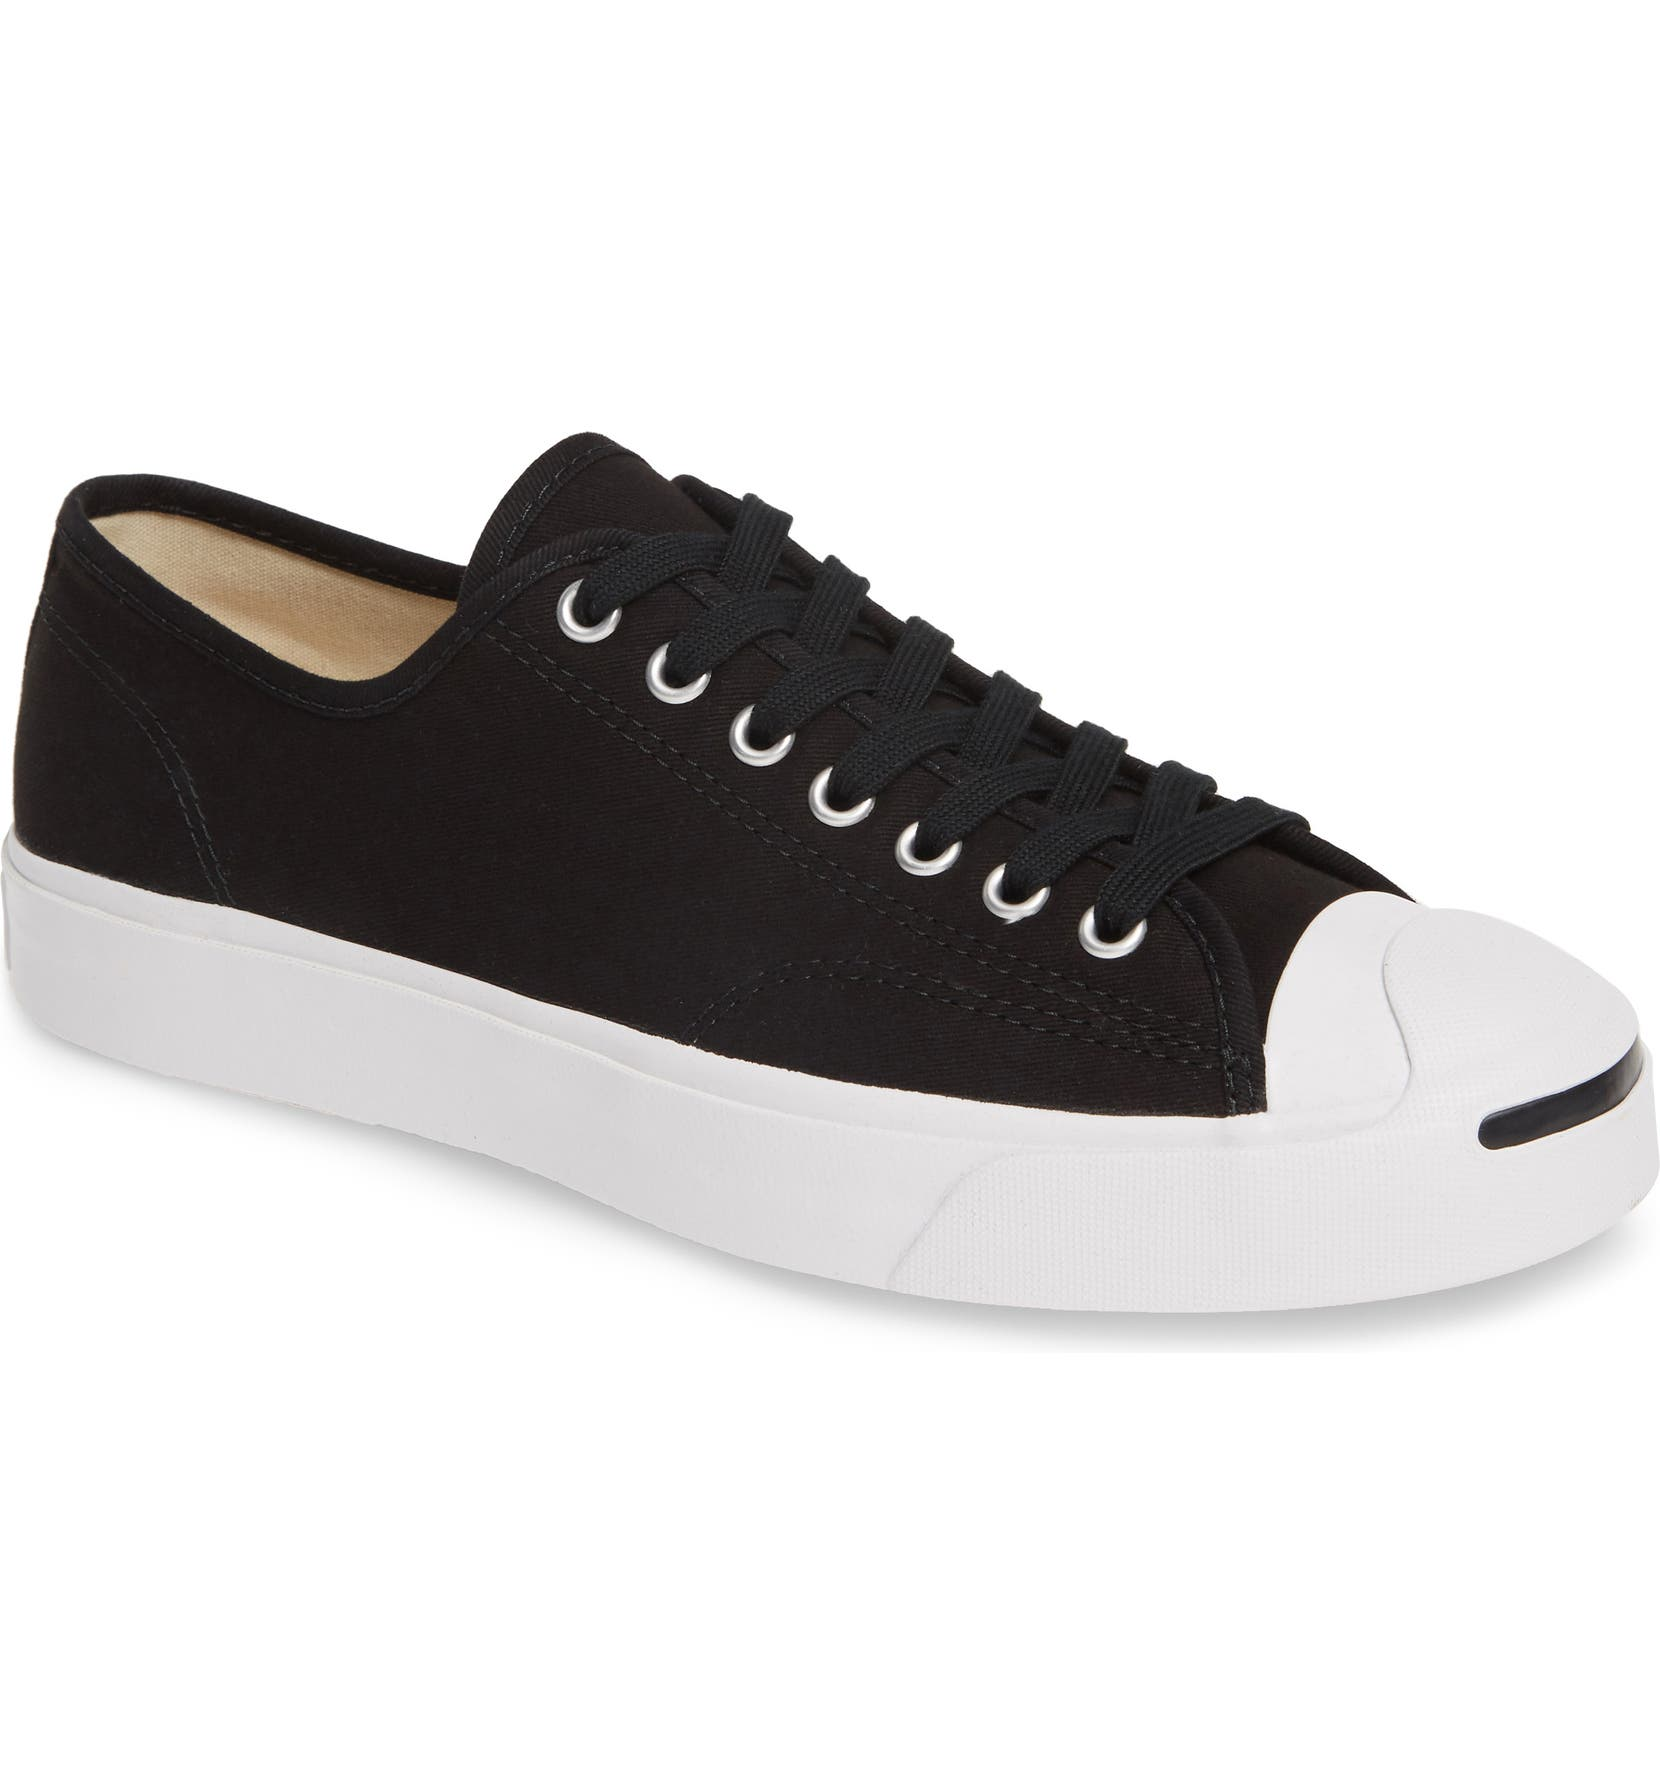 a5aa4c8408a4 Converse Jack Purcell Sneaker (Men)